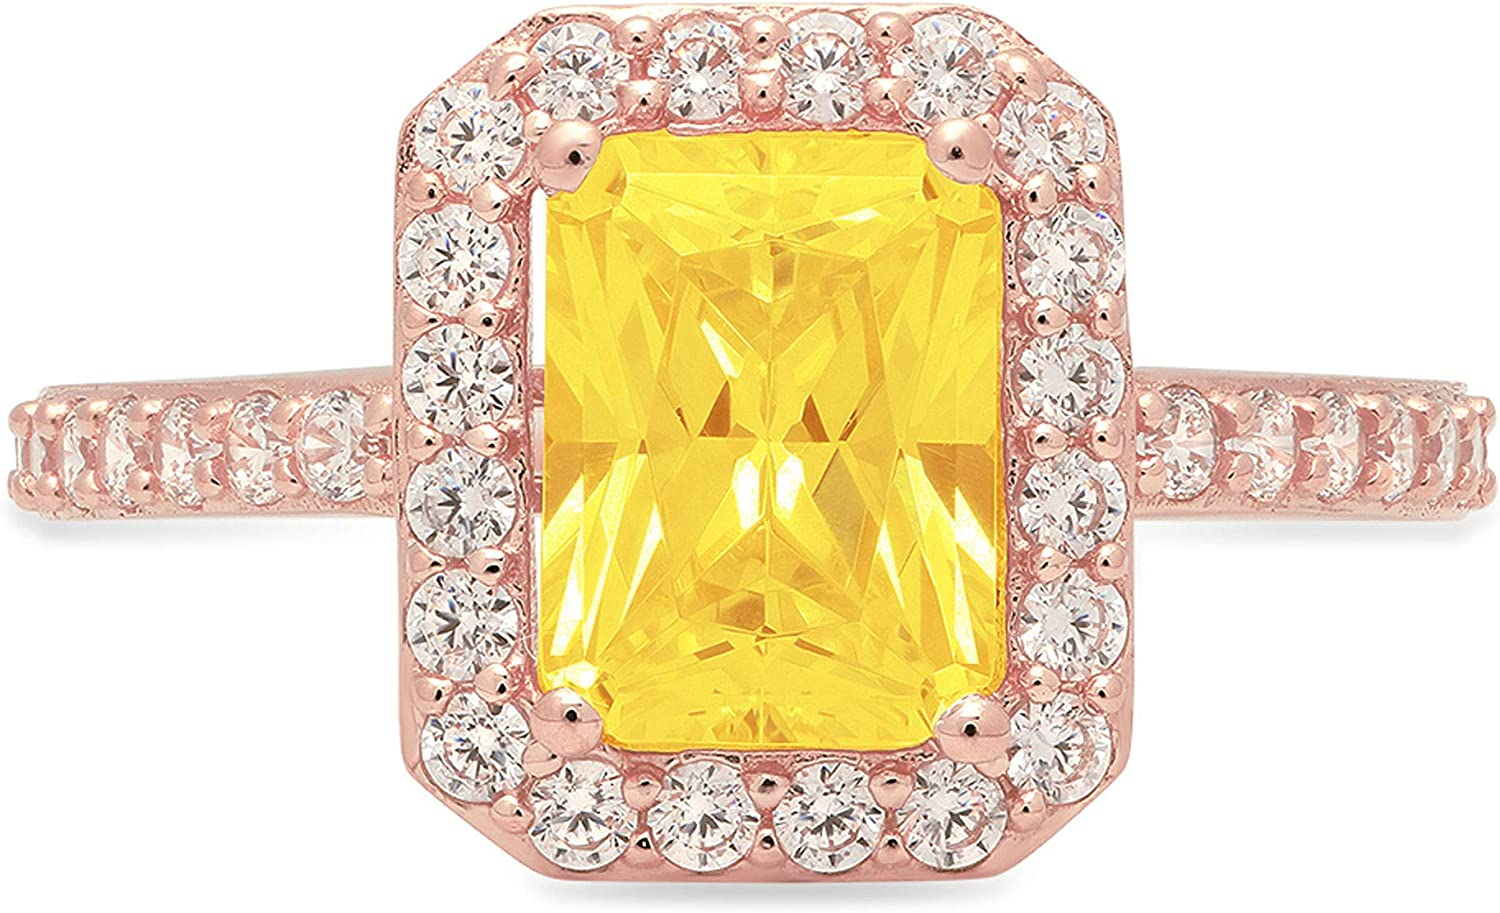 Clara Pucci 2.17 Brilliant Emerald Cut Solitaire Accent Halo Stunning Genuine Flawless Yellow Simulated Diamond Gem Designer Modern Ring Solid 18K Rose Gold